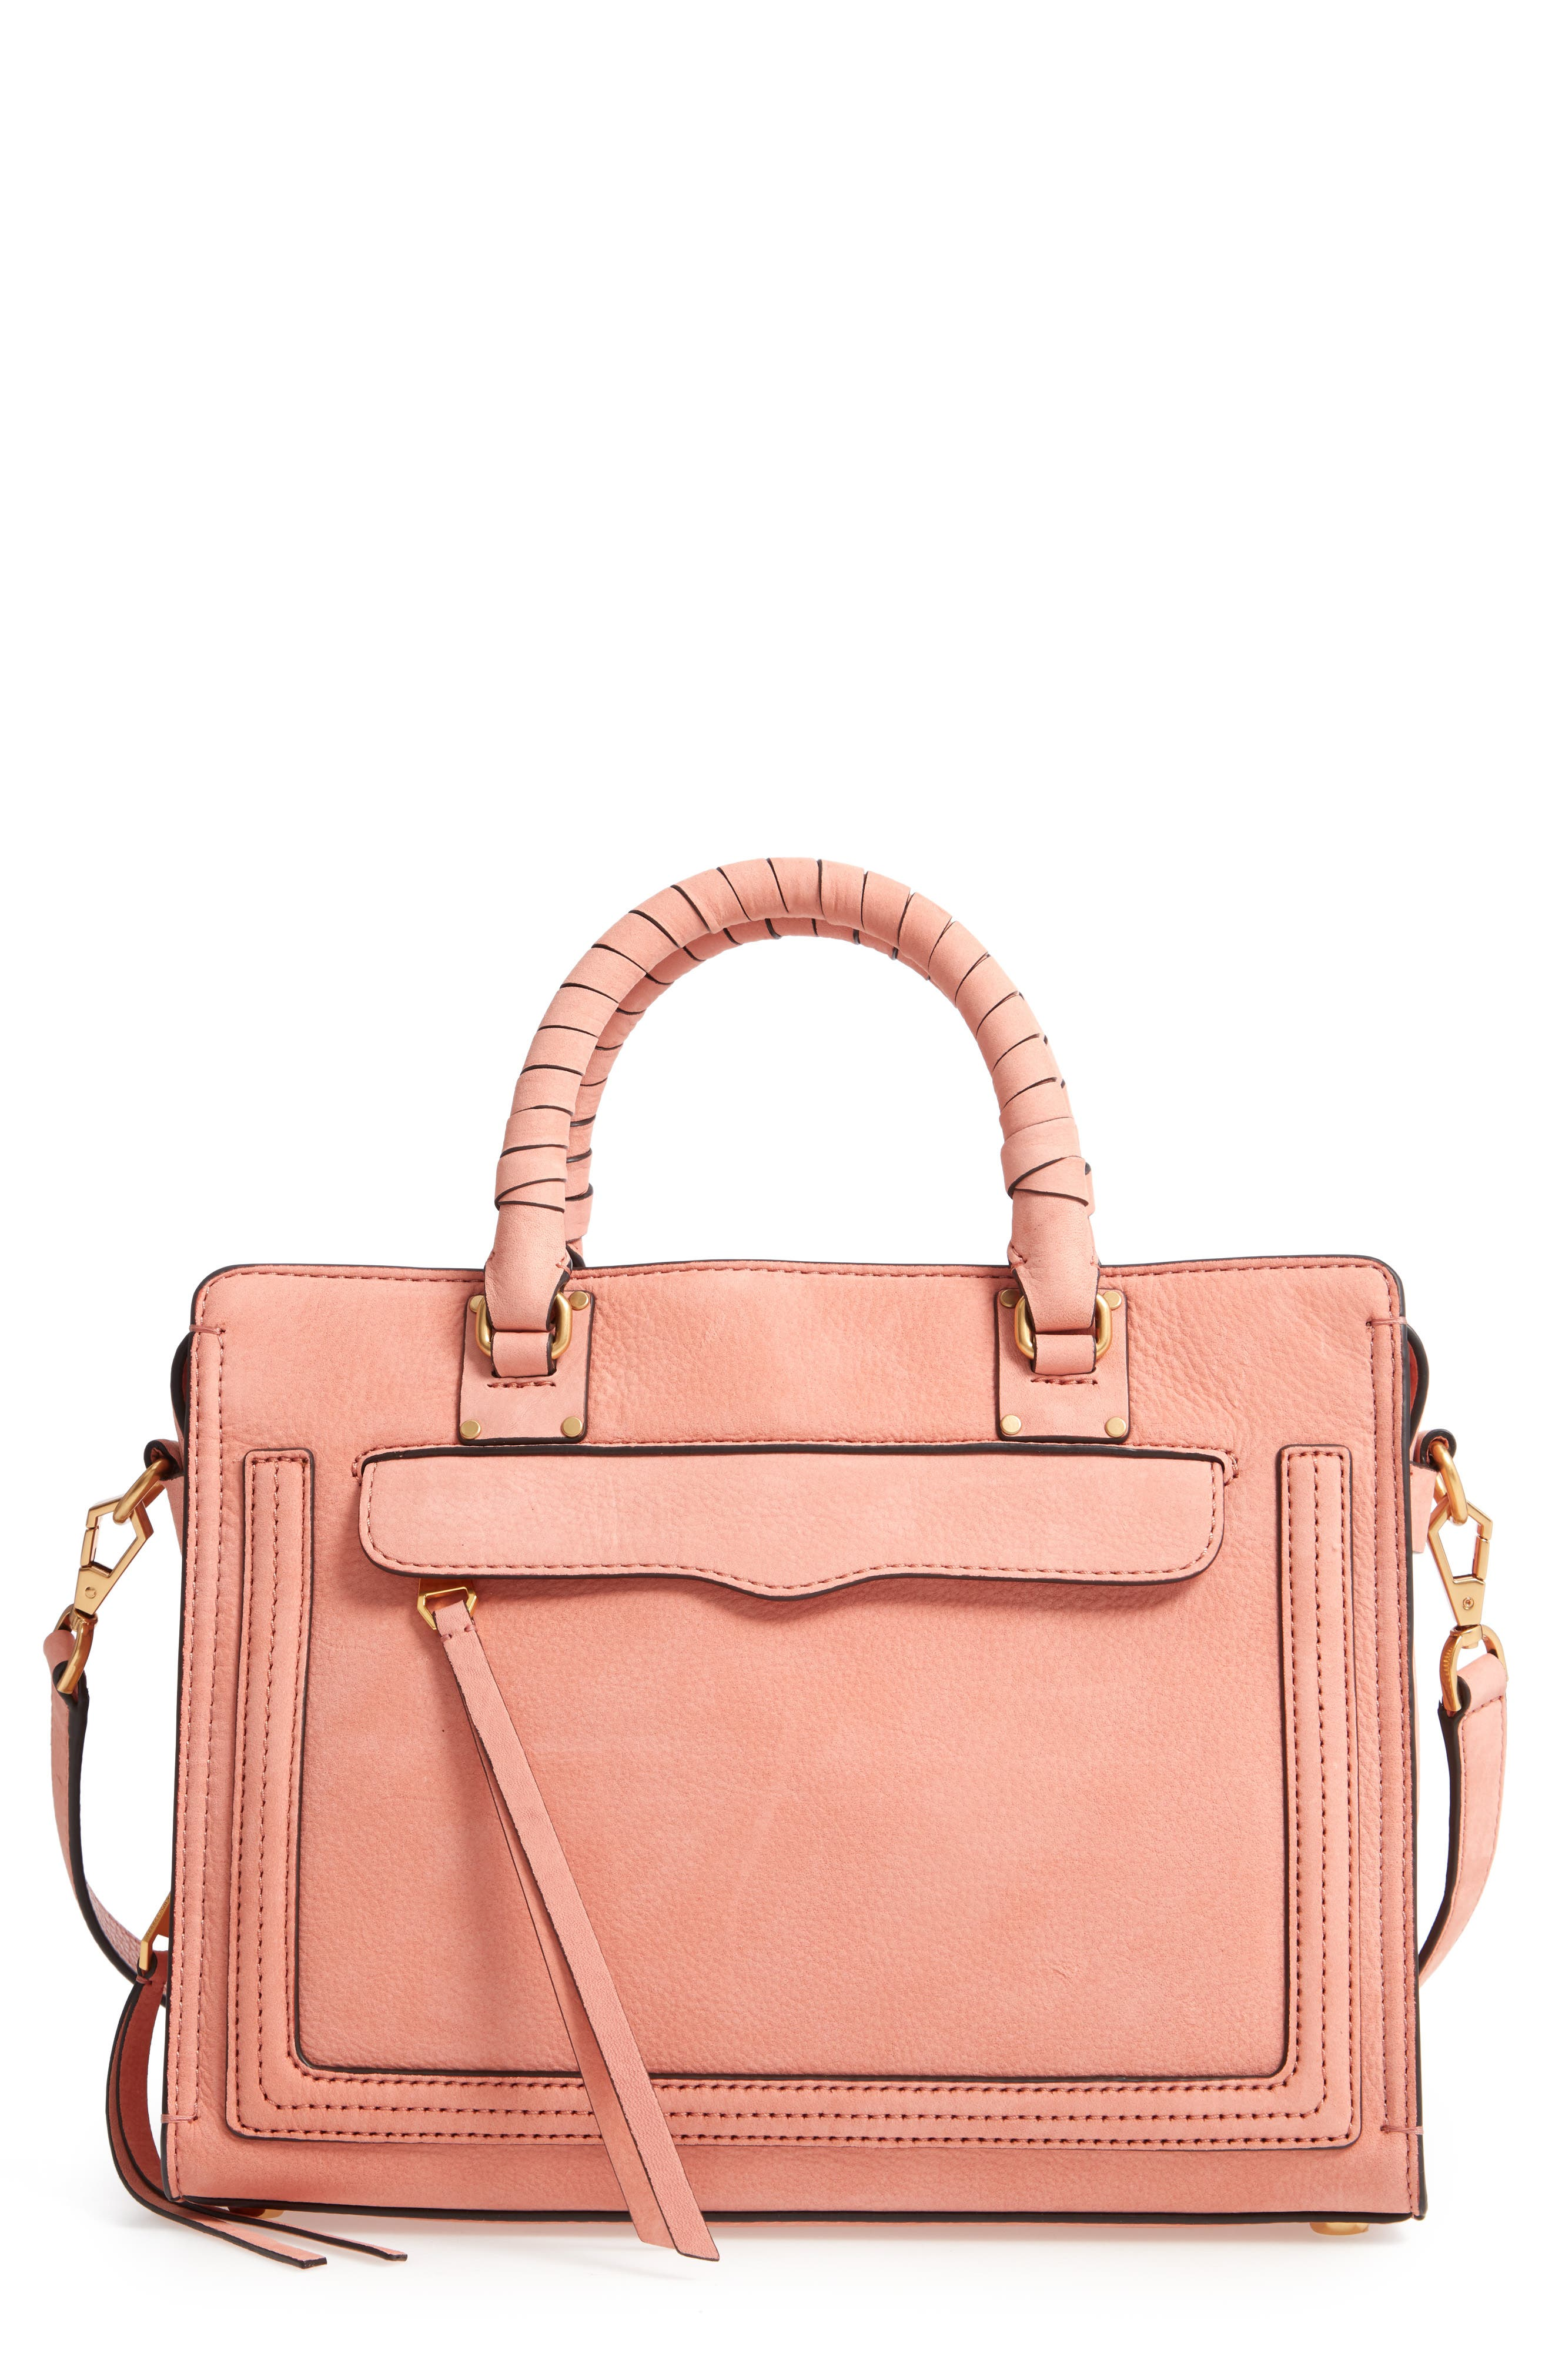 Medium Bree Leather Satchel,                             Main thumbnail 1, color,                             650